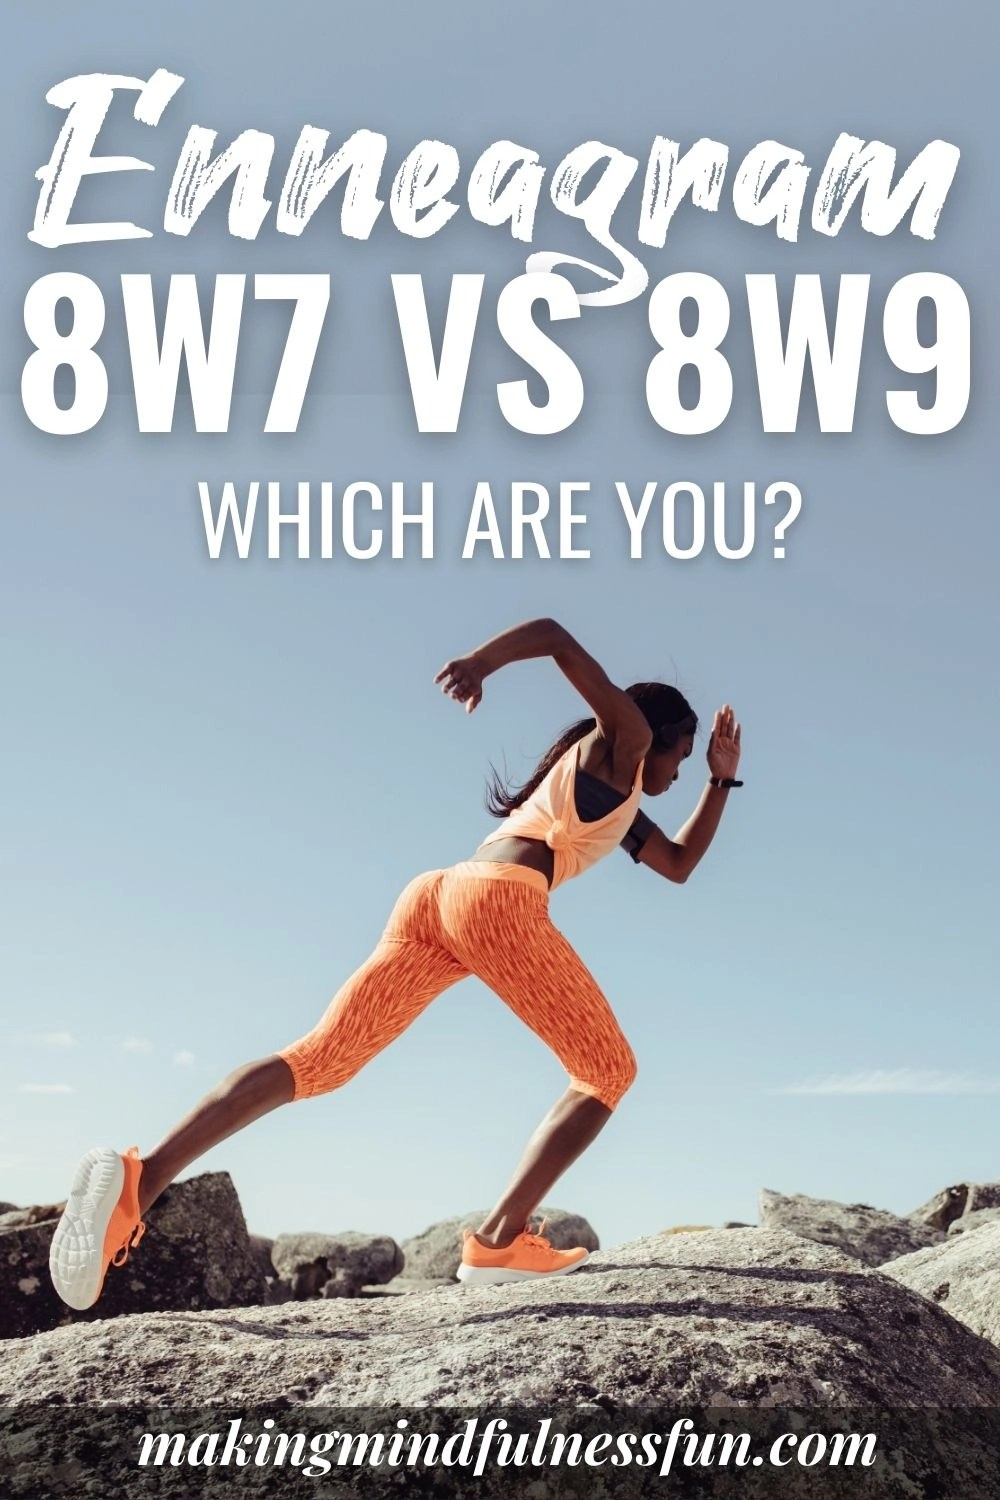 Enneagram 8w7 vs 8w9 which are you 1